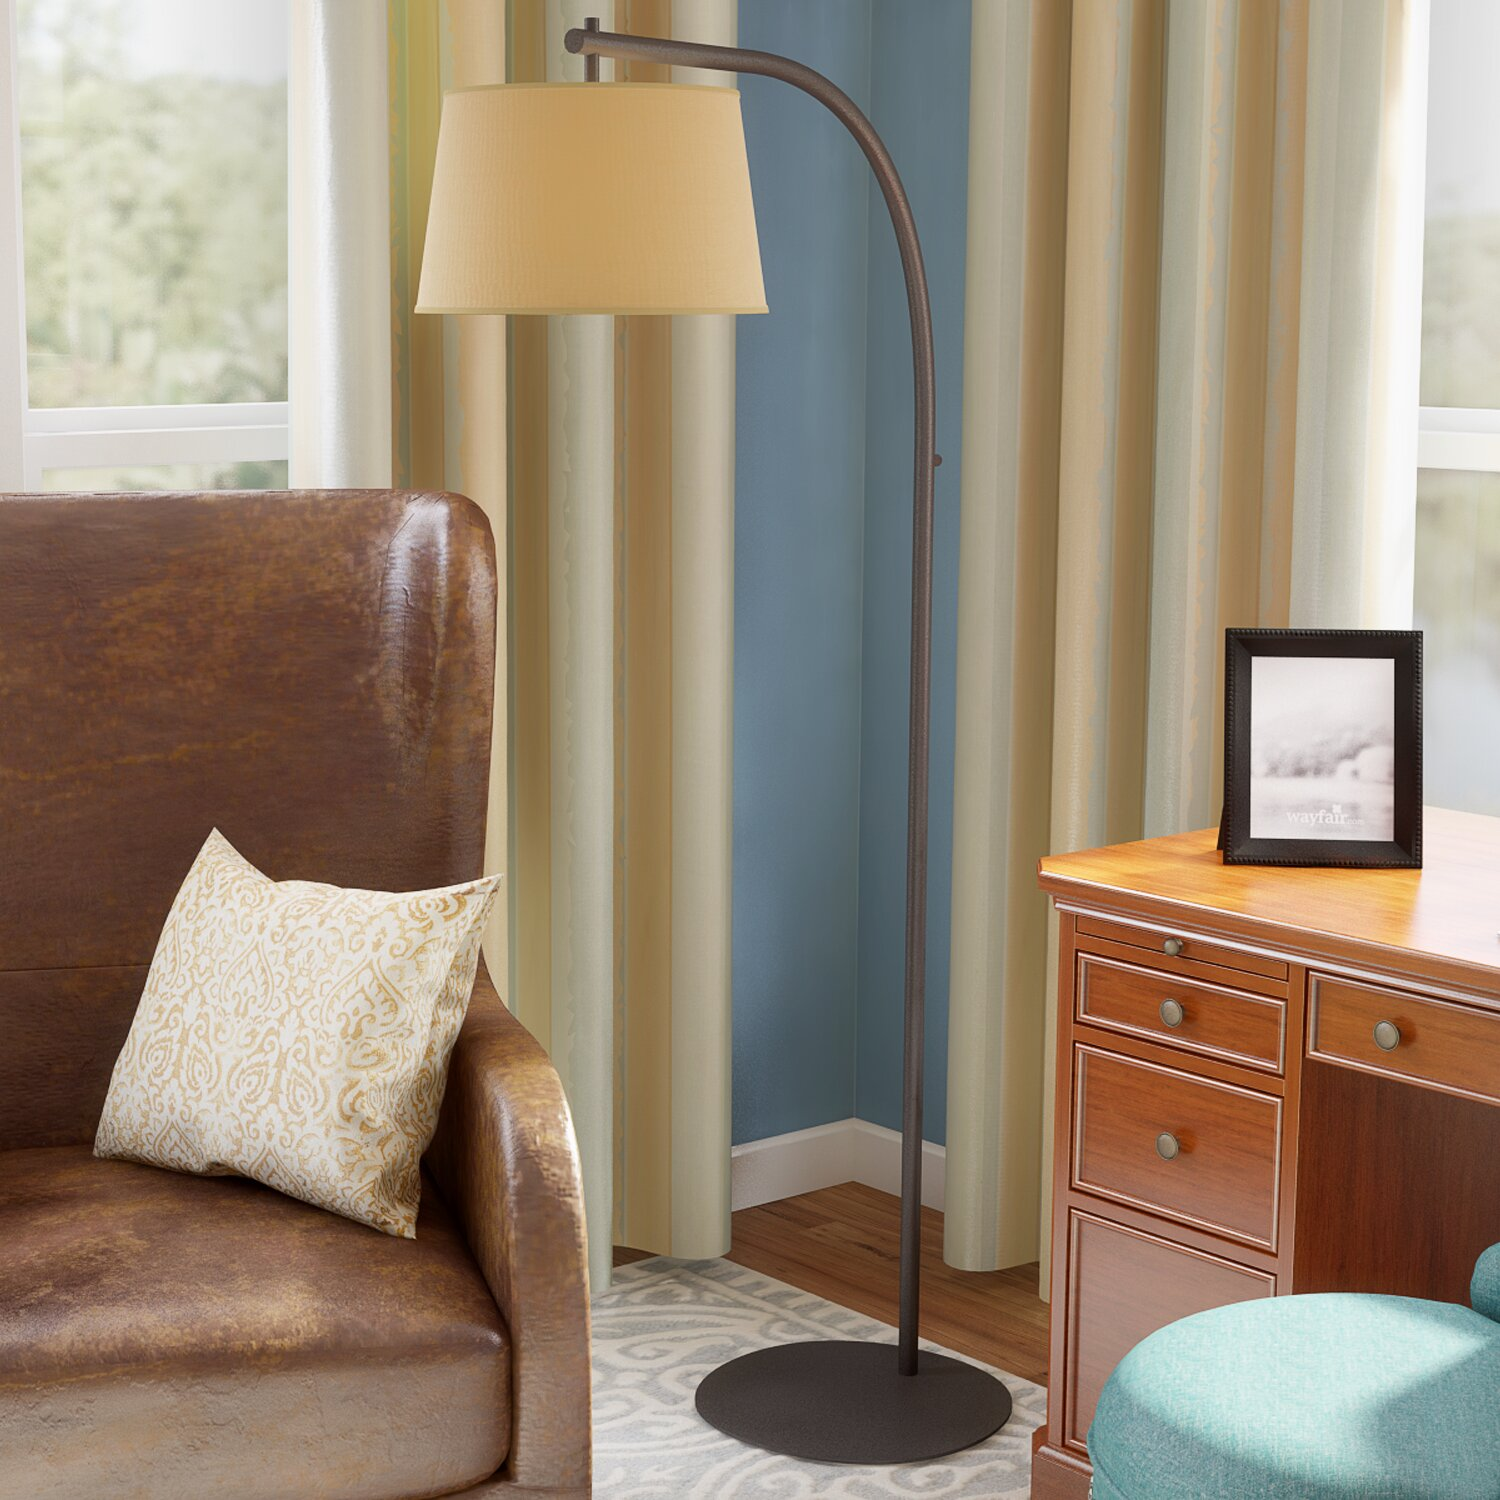 Alcott hill sweep 61 arched floor lamp reviews wayfair for Arch floor lamps for living room